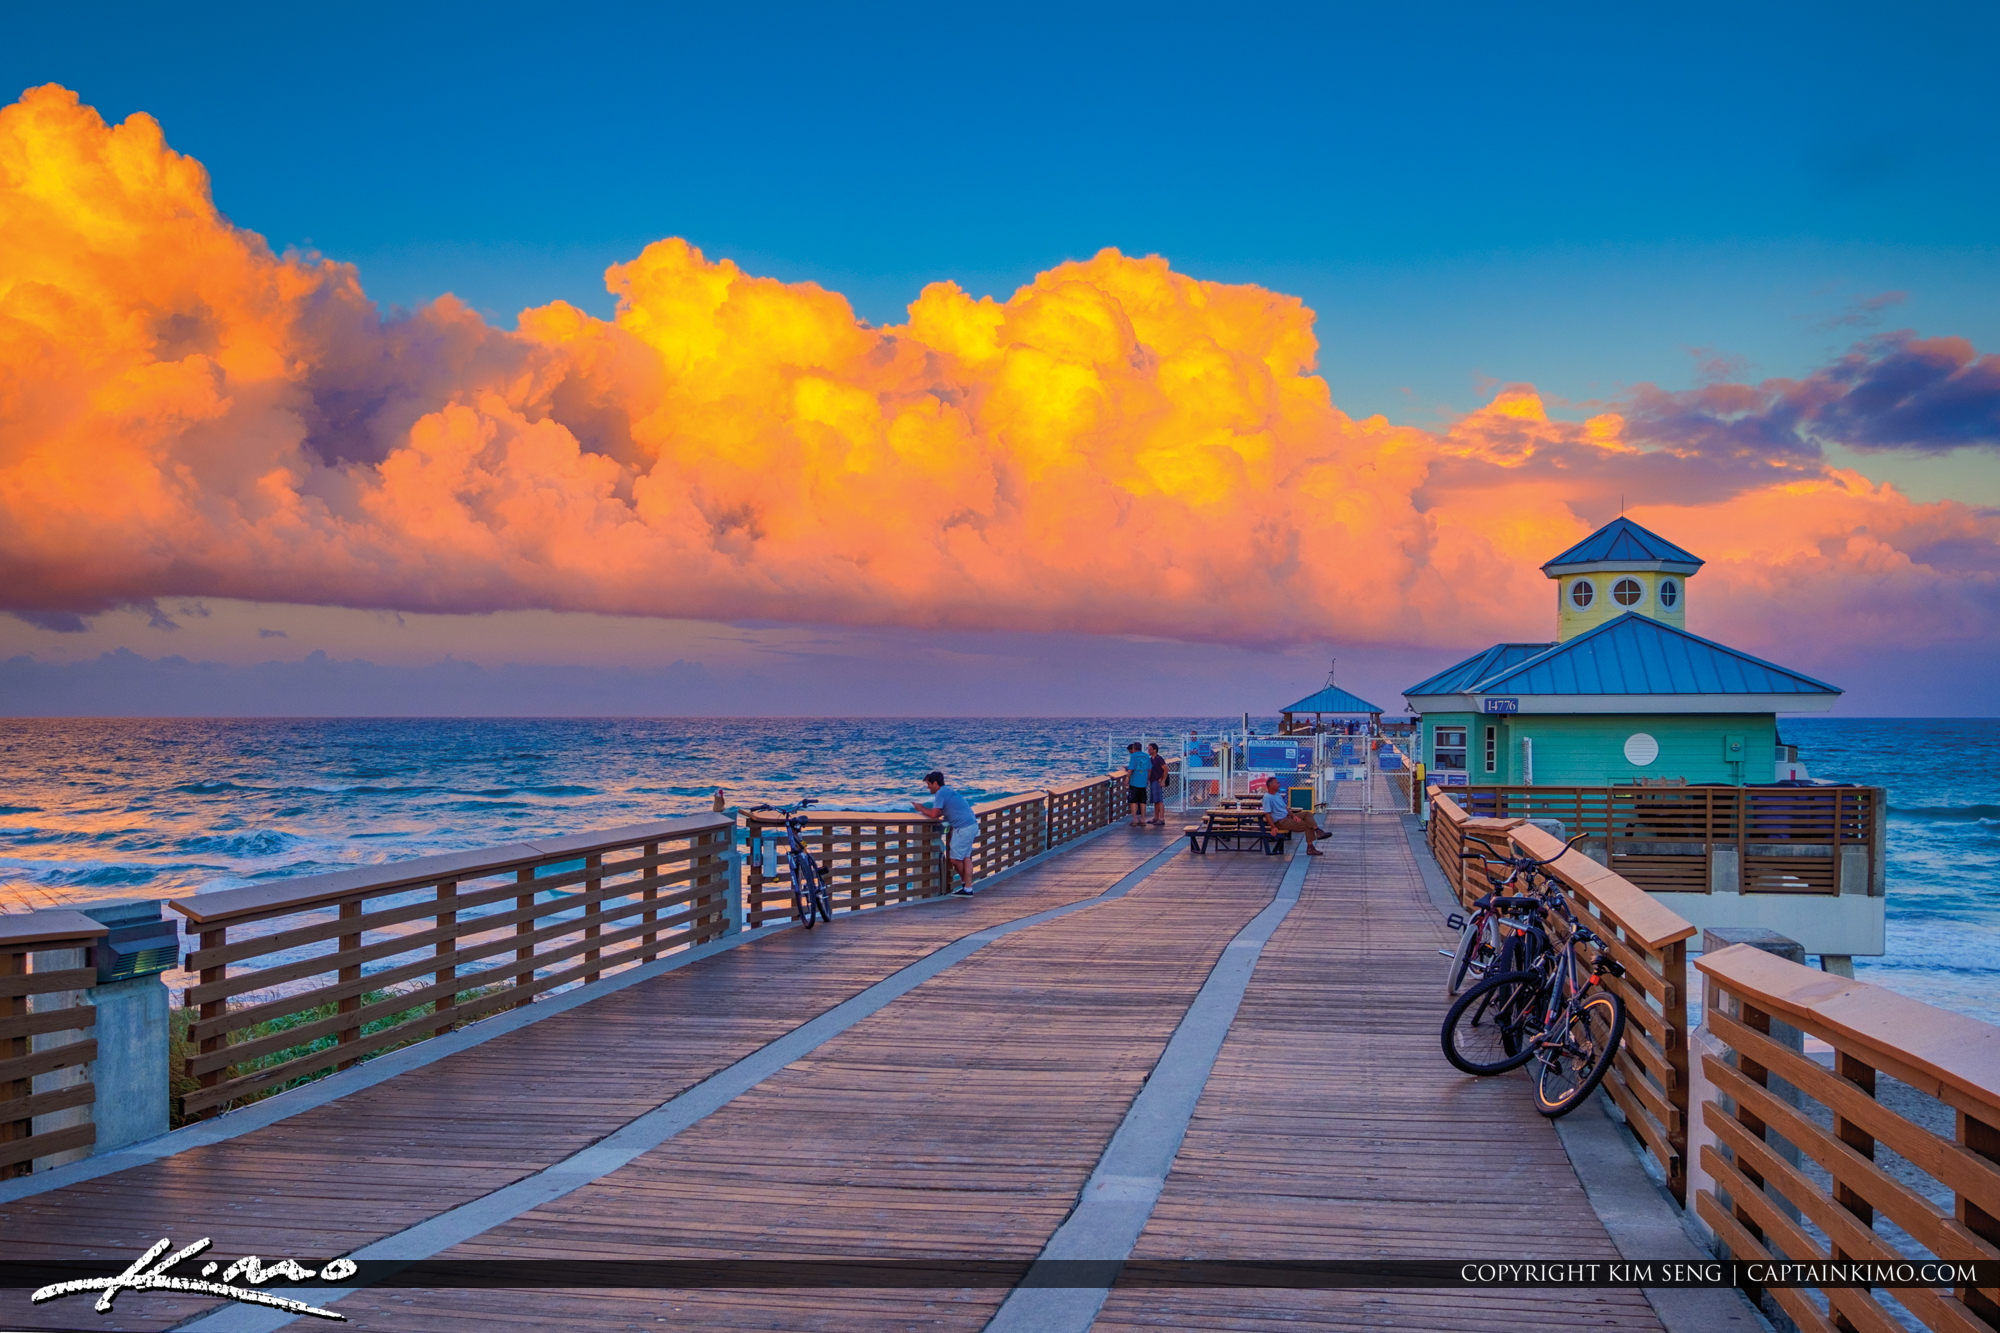 Juno Beach Pier Clouds Light Up at Sunset